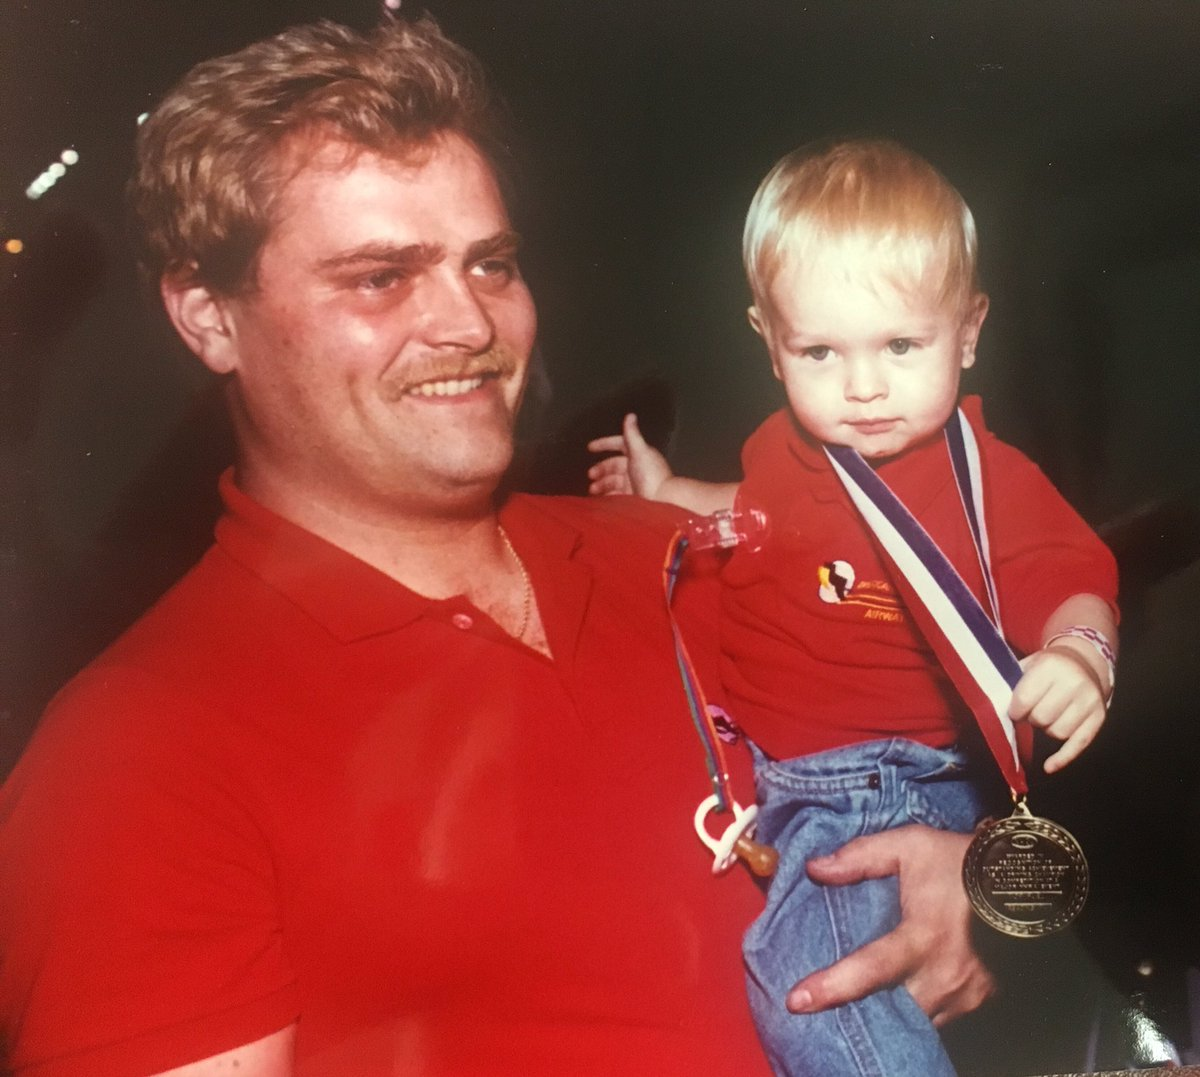 #ThrowbackThursday to Scott celebrating a win with Corey! Today would've been his 54th birthday #NHRA #KalittaStrong https://t.co/H2zNXDb2n8